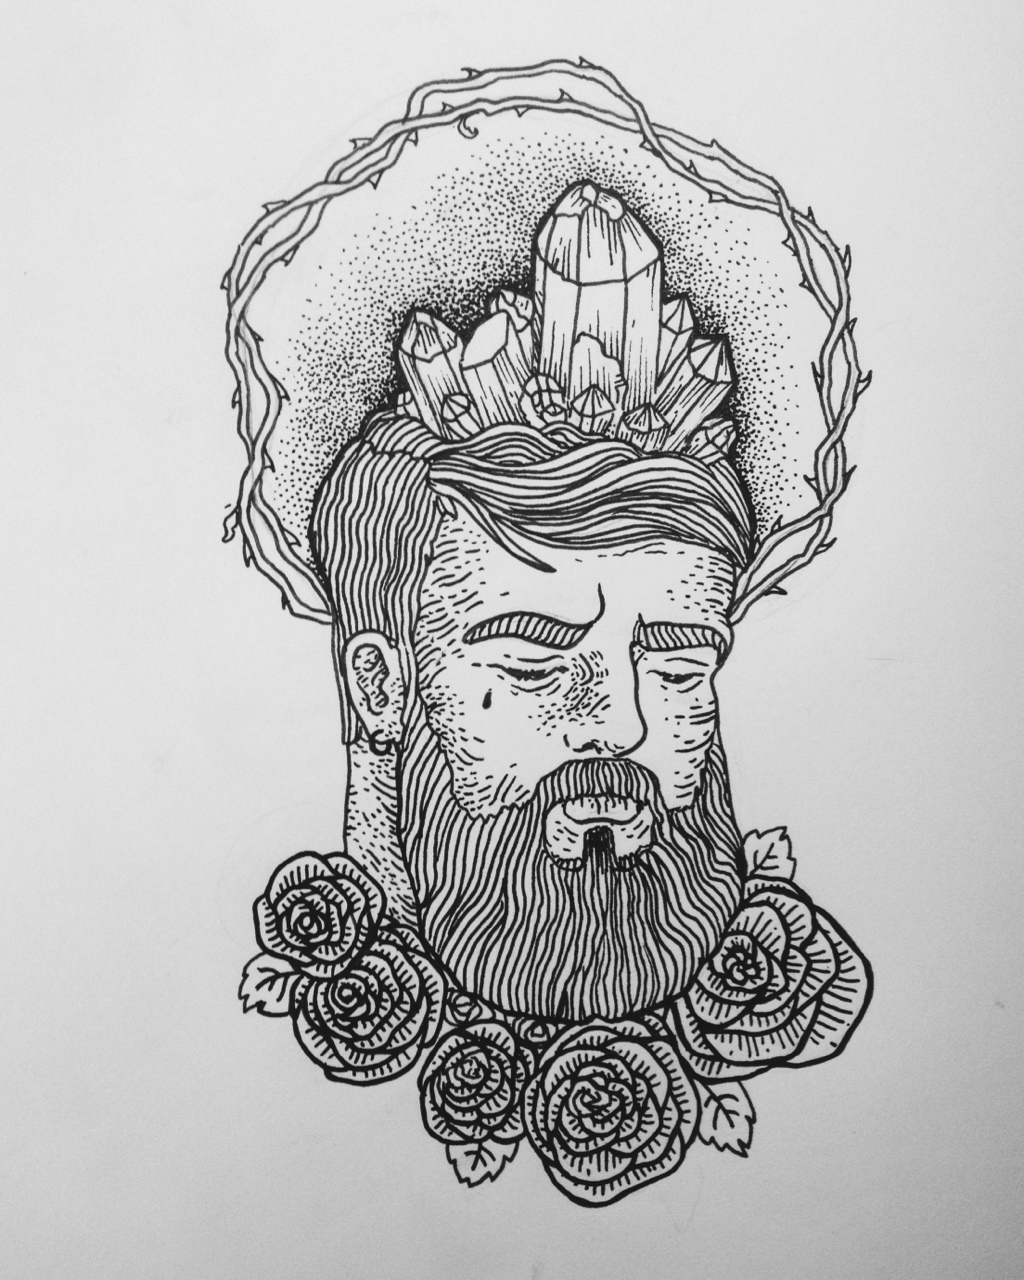 Crystal Brained traditional tattoo sketch